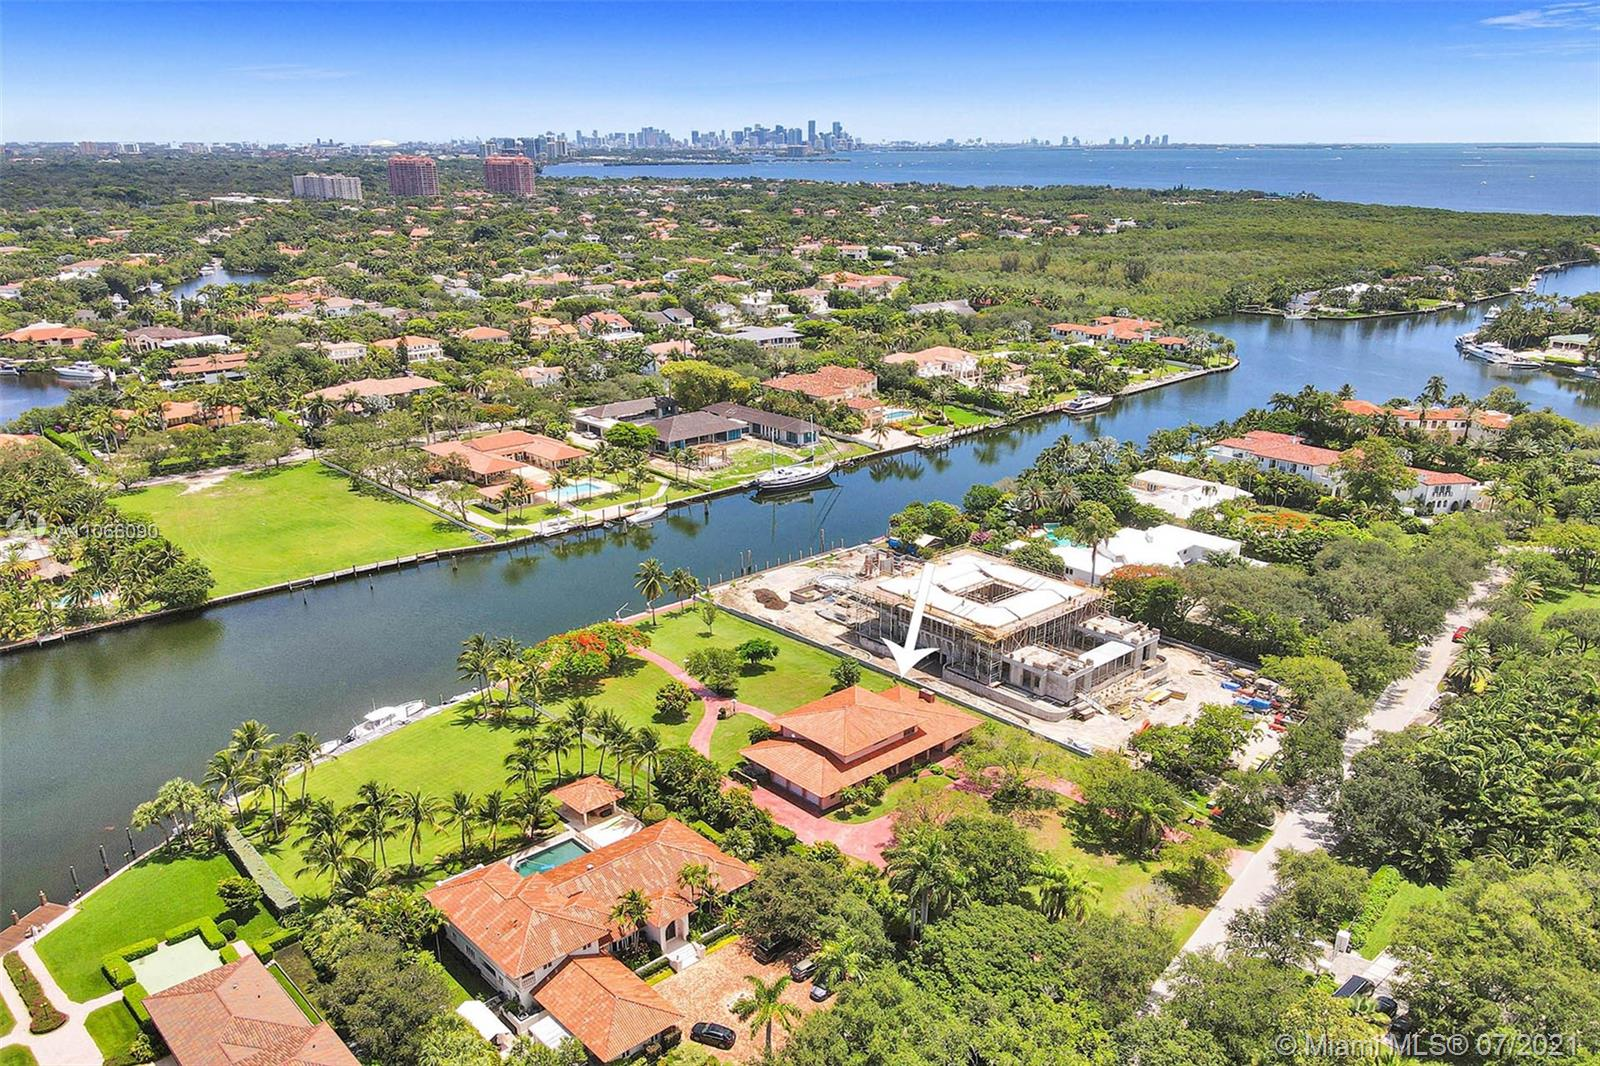 Prestigious Gable Estates Deepest Water Yacht Basin!  This gorgeous 1.38 acre estate is prime property in one of the most coveted locations in the area! Upon entering the lushly landscaped grounds of the Gable Estates community you will be entranced with this gorgeous DIRECT OCEAN access community! One of the few DEEP WATER access areas that can accommodate large yachts & sailboats. This property is boasting over 160ft of seawall on one of the deepest canals and largest yacht basins in the community with Biscayne Bay & the Atlantic Ocean less than 3 minutes away. Wake up every morning in paradise with gorgeous views of the water, gorgeous million dollar homes & amazing yachts. Rarely available opportunity in this prestigious area. Remodel or tear down and build your own private paradise!